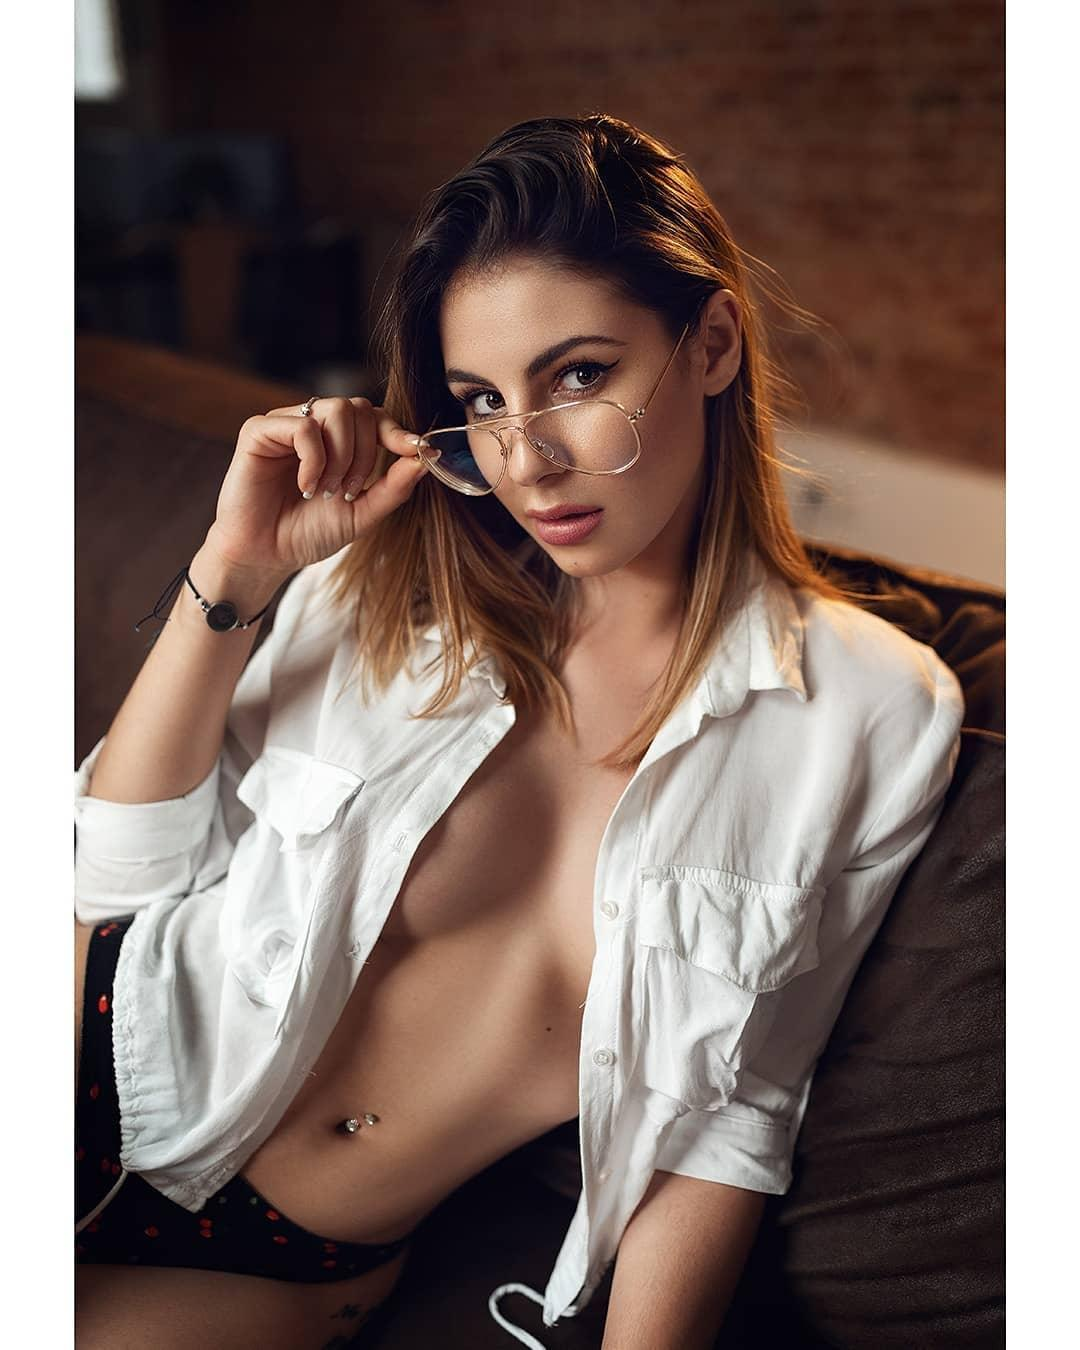 Picture with tags: HD, Topless, Interesting, Girl